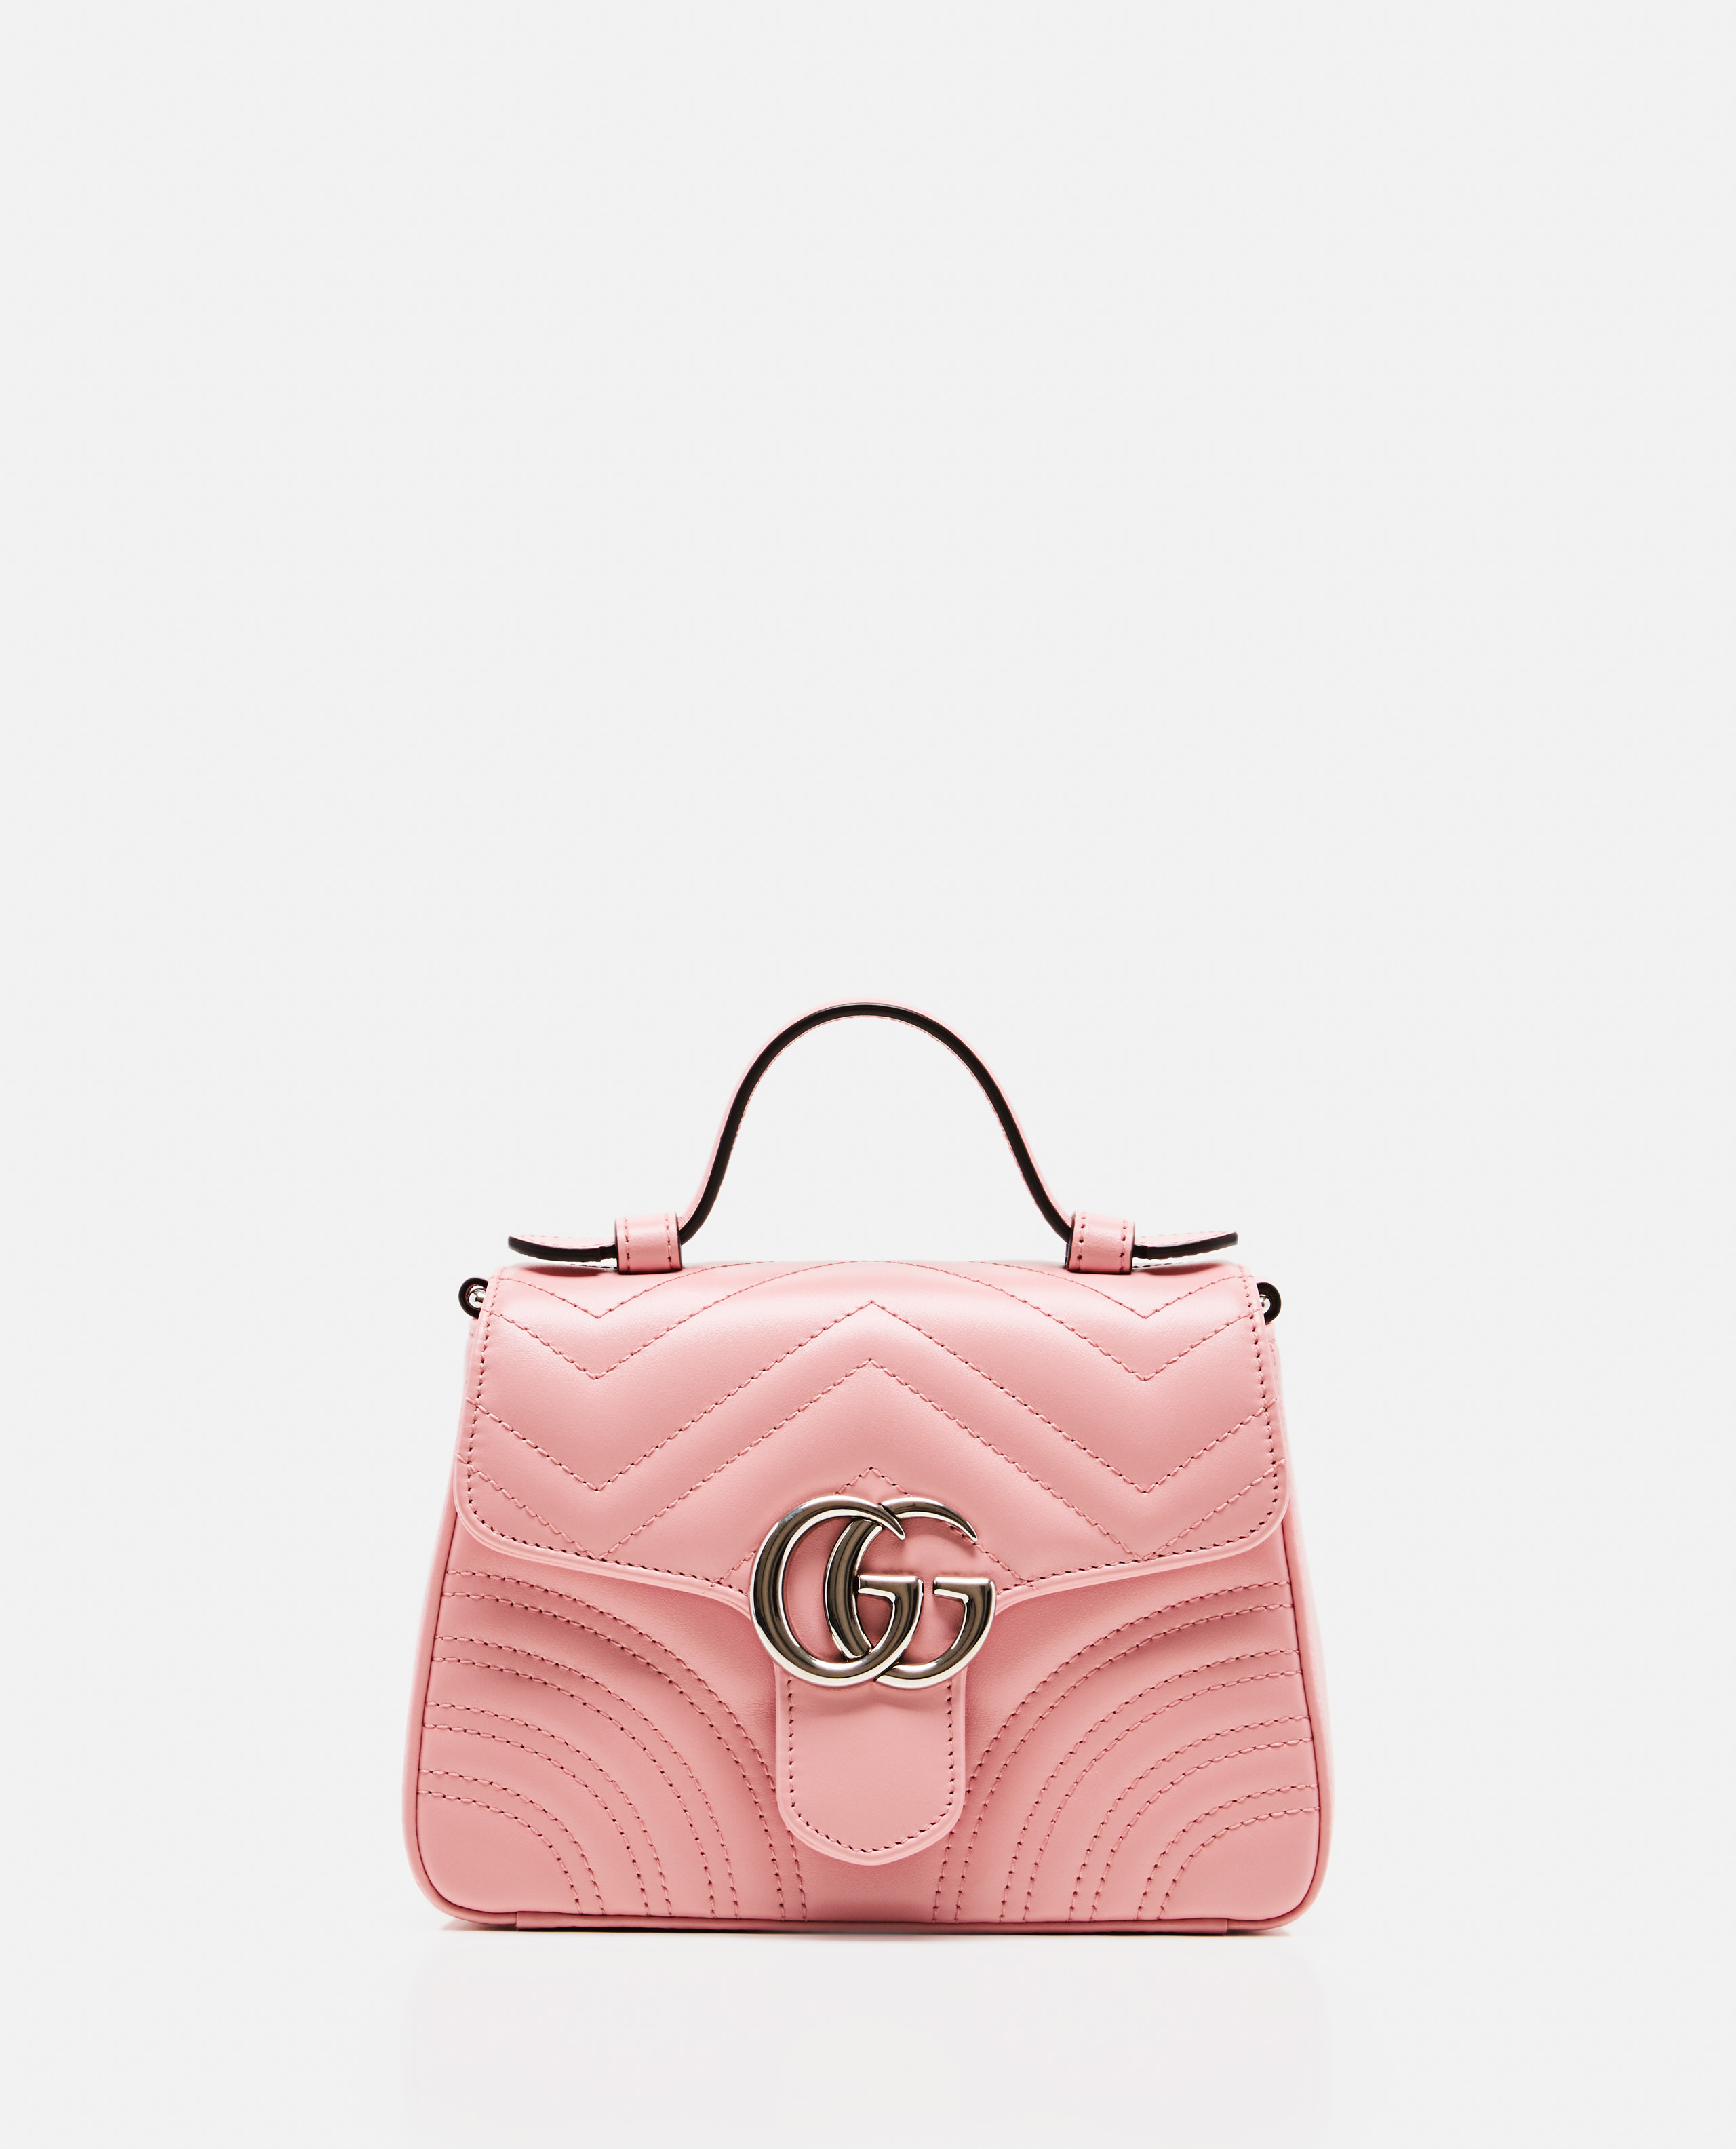 GG Marmont mini handbag